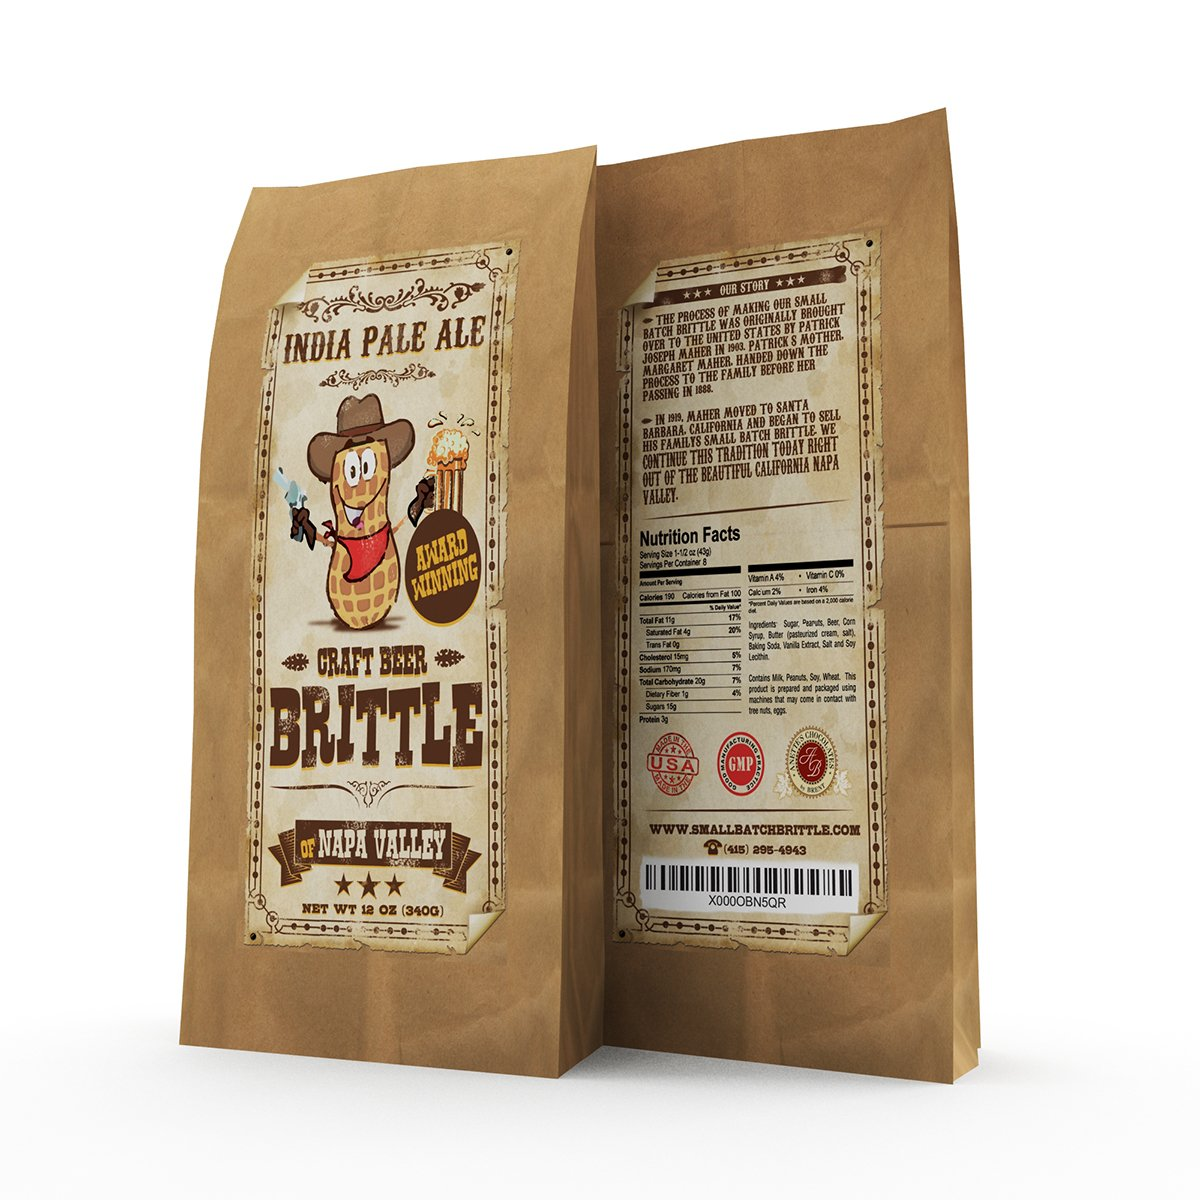 Award Winning Gourmet Beer Brittle - An IPA Beer Brittle Made In Napa Valley, California - Hands Down, The Greatest Tasting Peanut Brittle Your Mouth Has Ever Tasted.